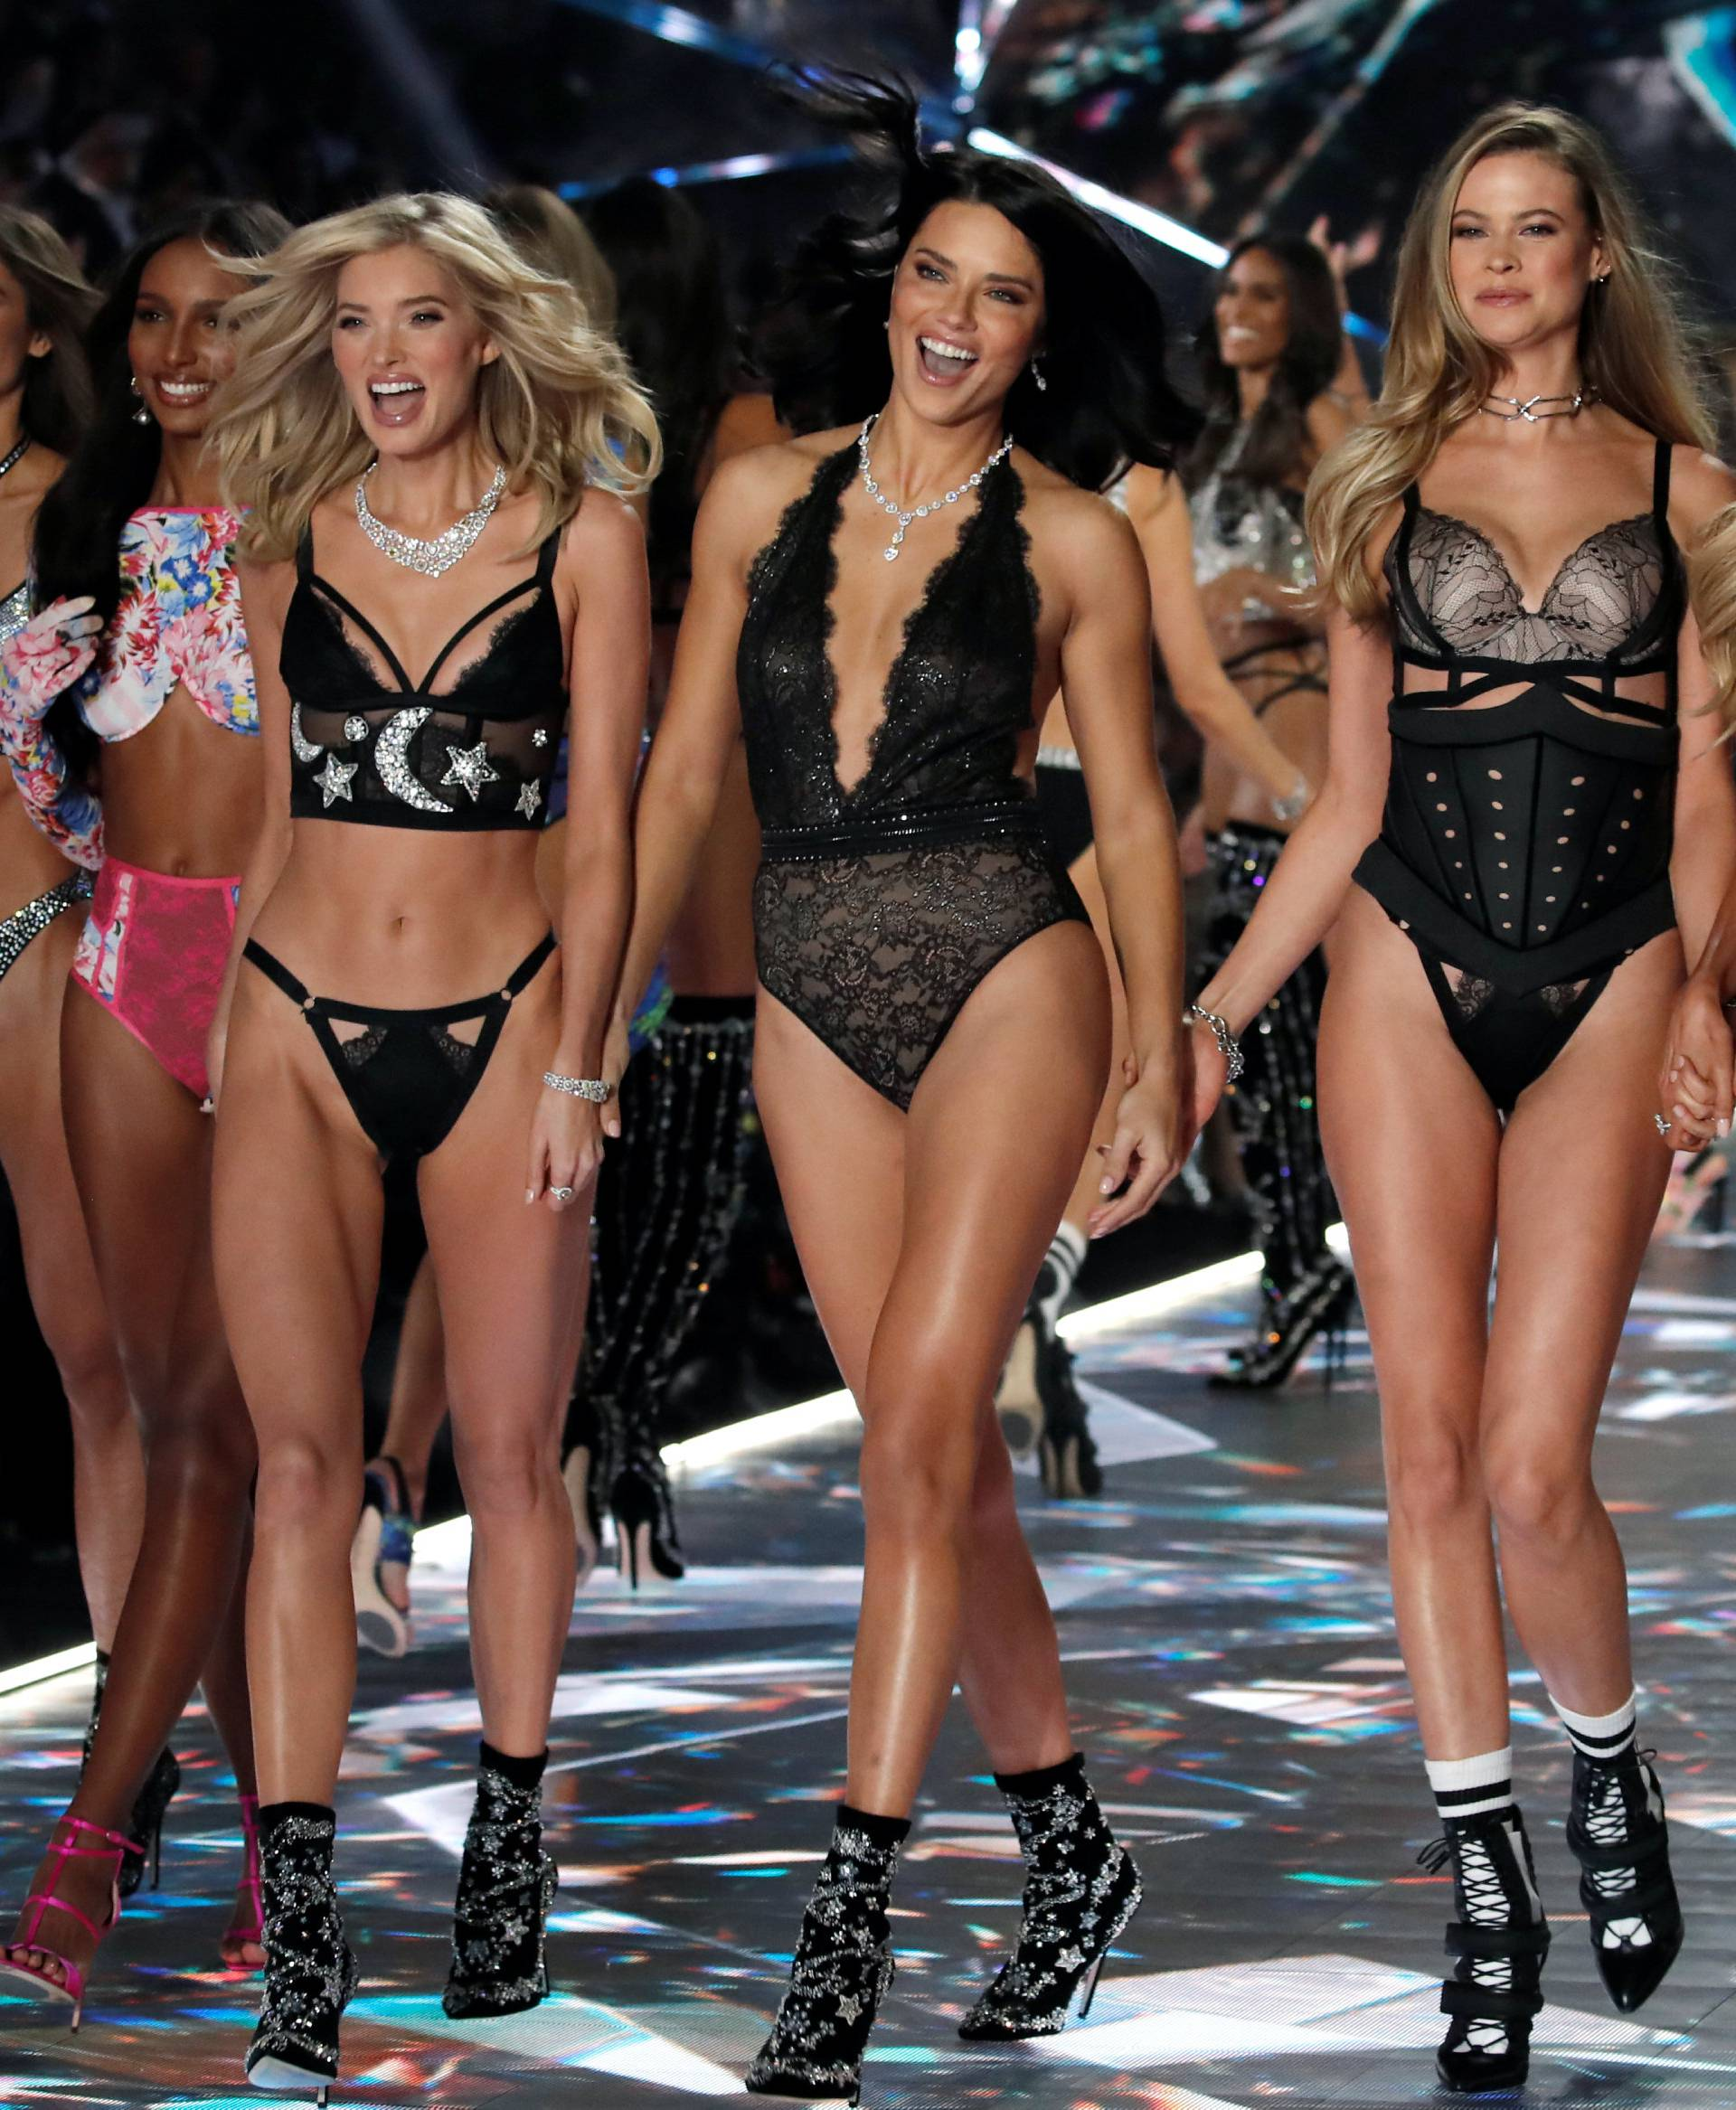 Model Adriana Lima and other models present creations during the 2018 Victoria's Secret Fashion Show in New York